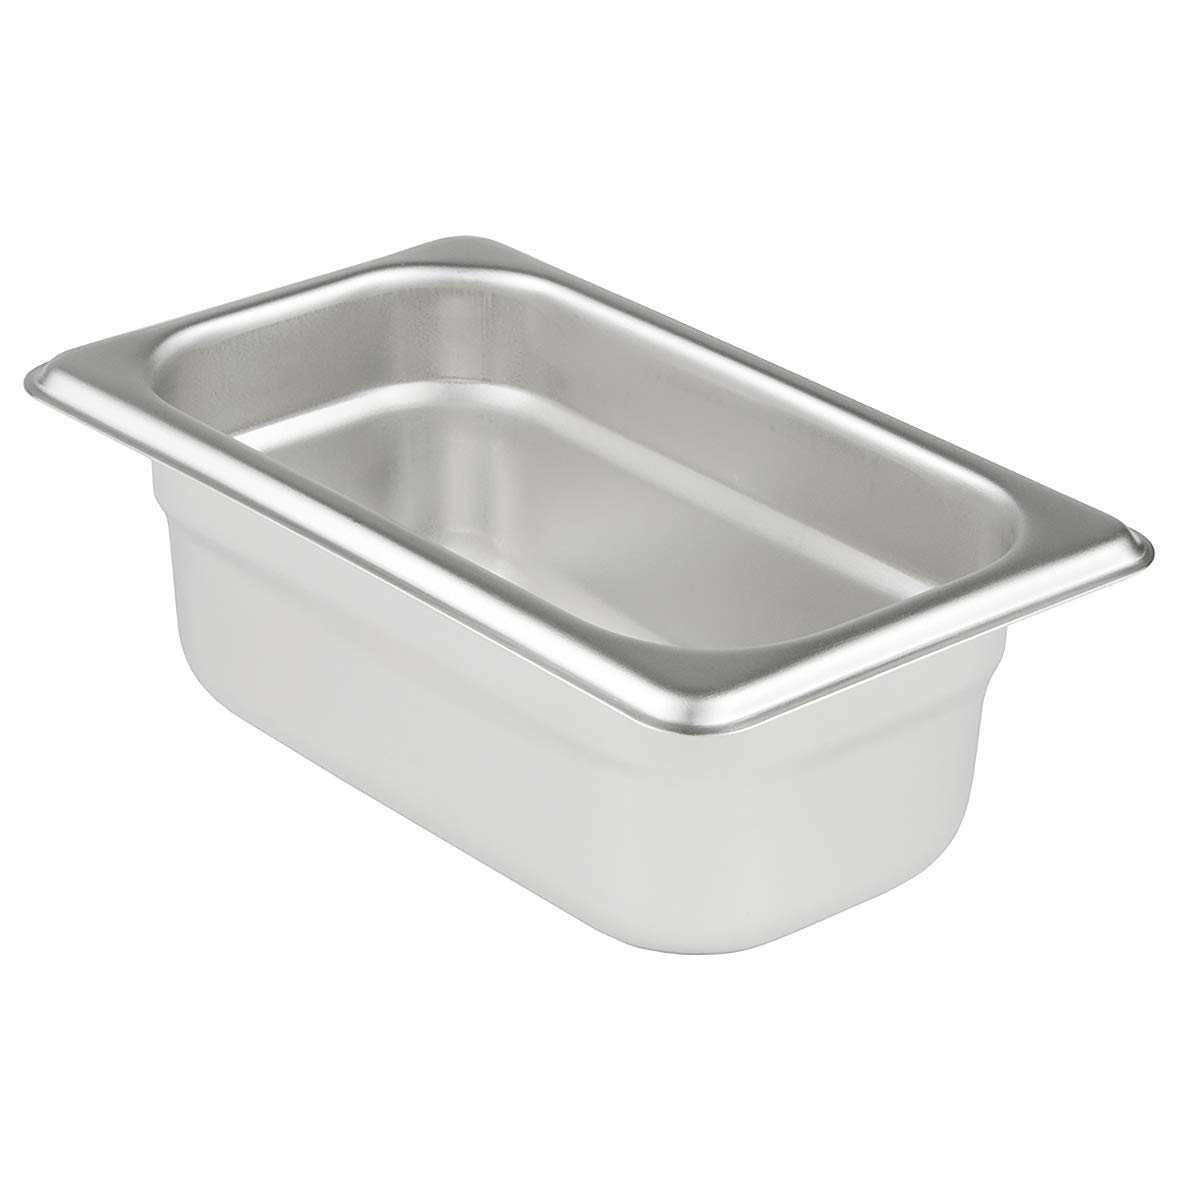 Update International SPH-112 2.5-Inch Ninth-Size Anti-Jam Steam Table Pan, Silver